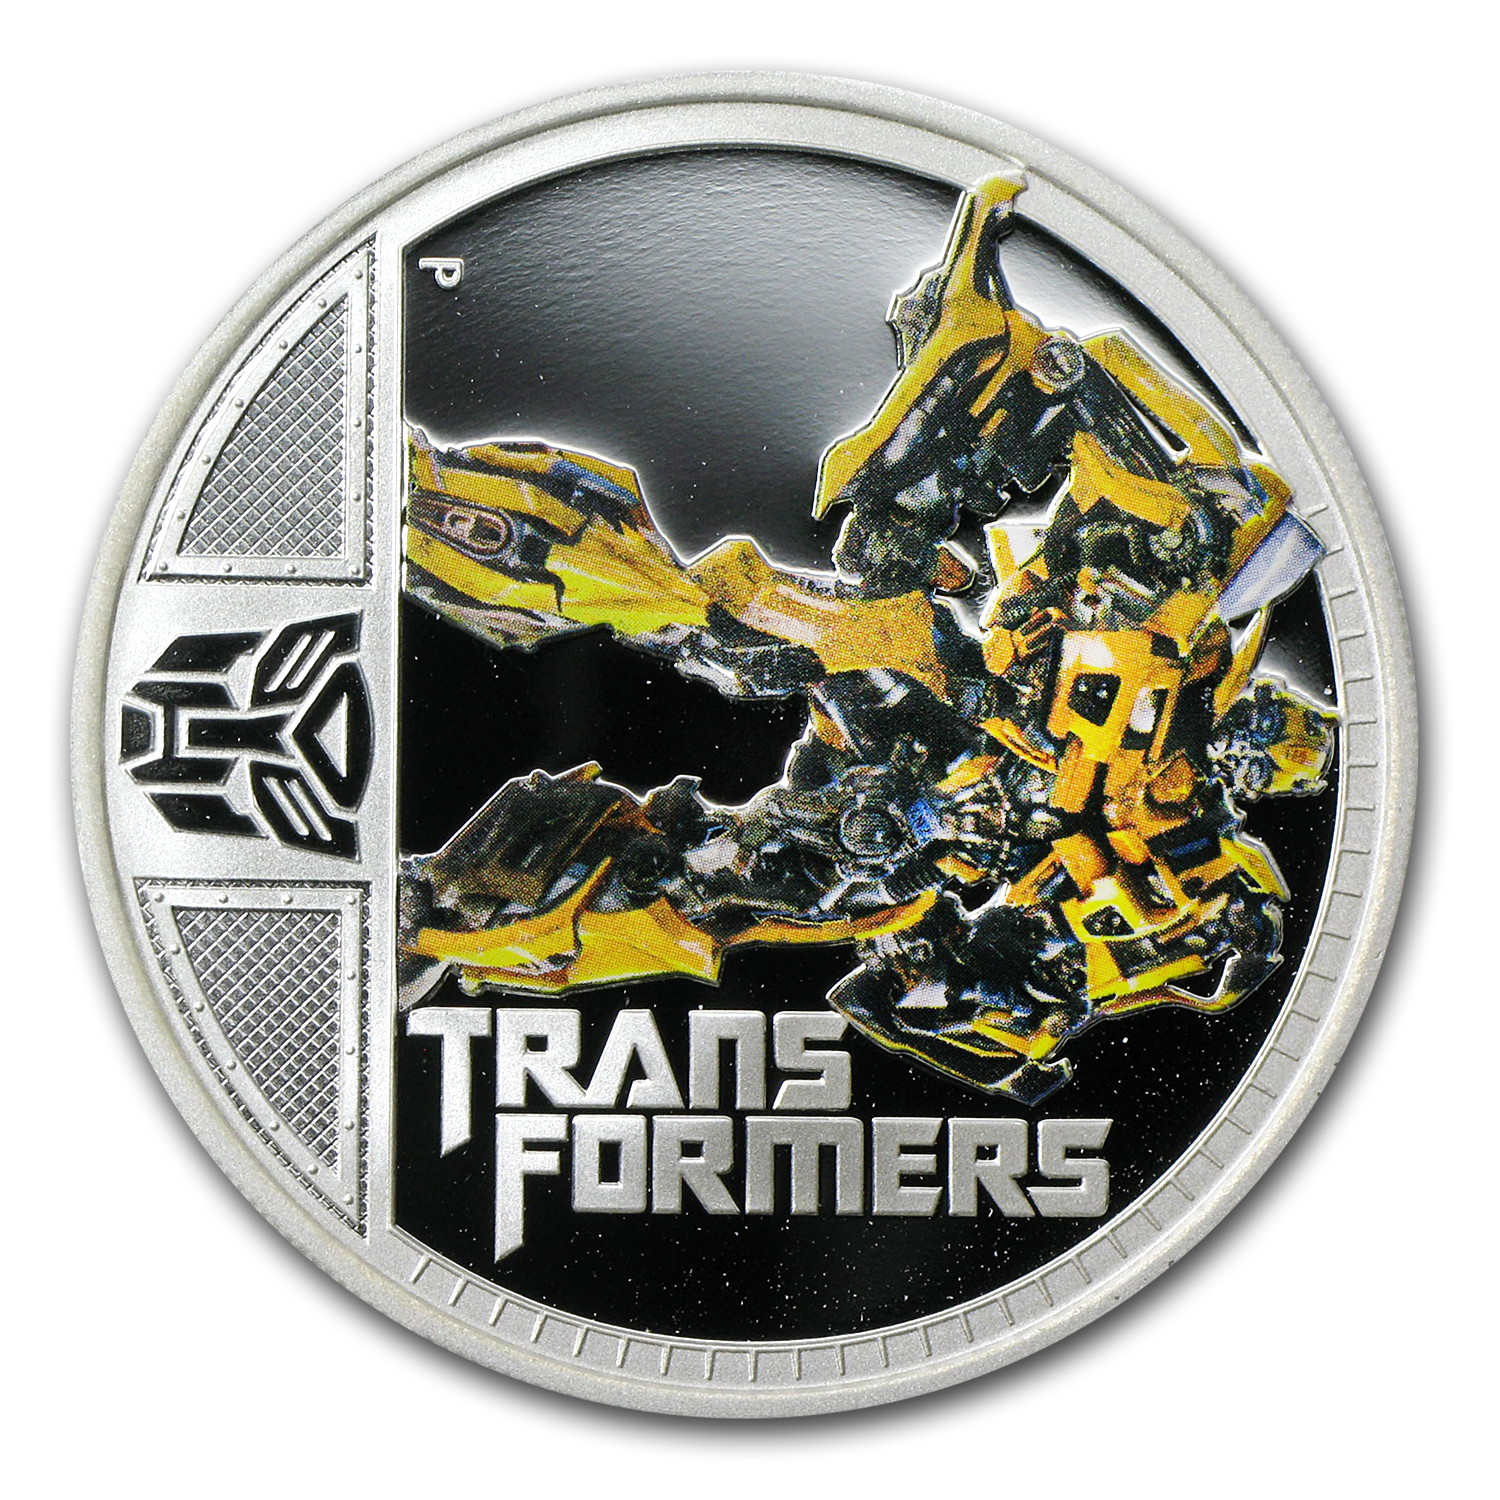 2011 1 oz Silver 2nd Transformers Series Proof (Bumble Bee)